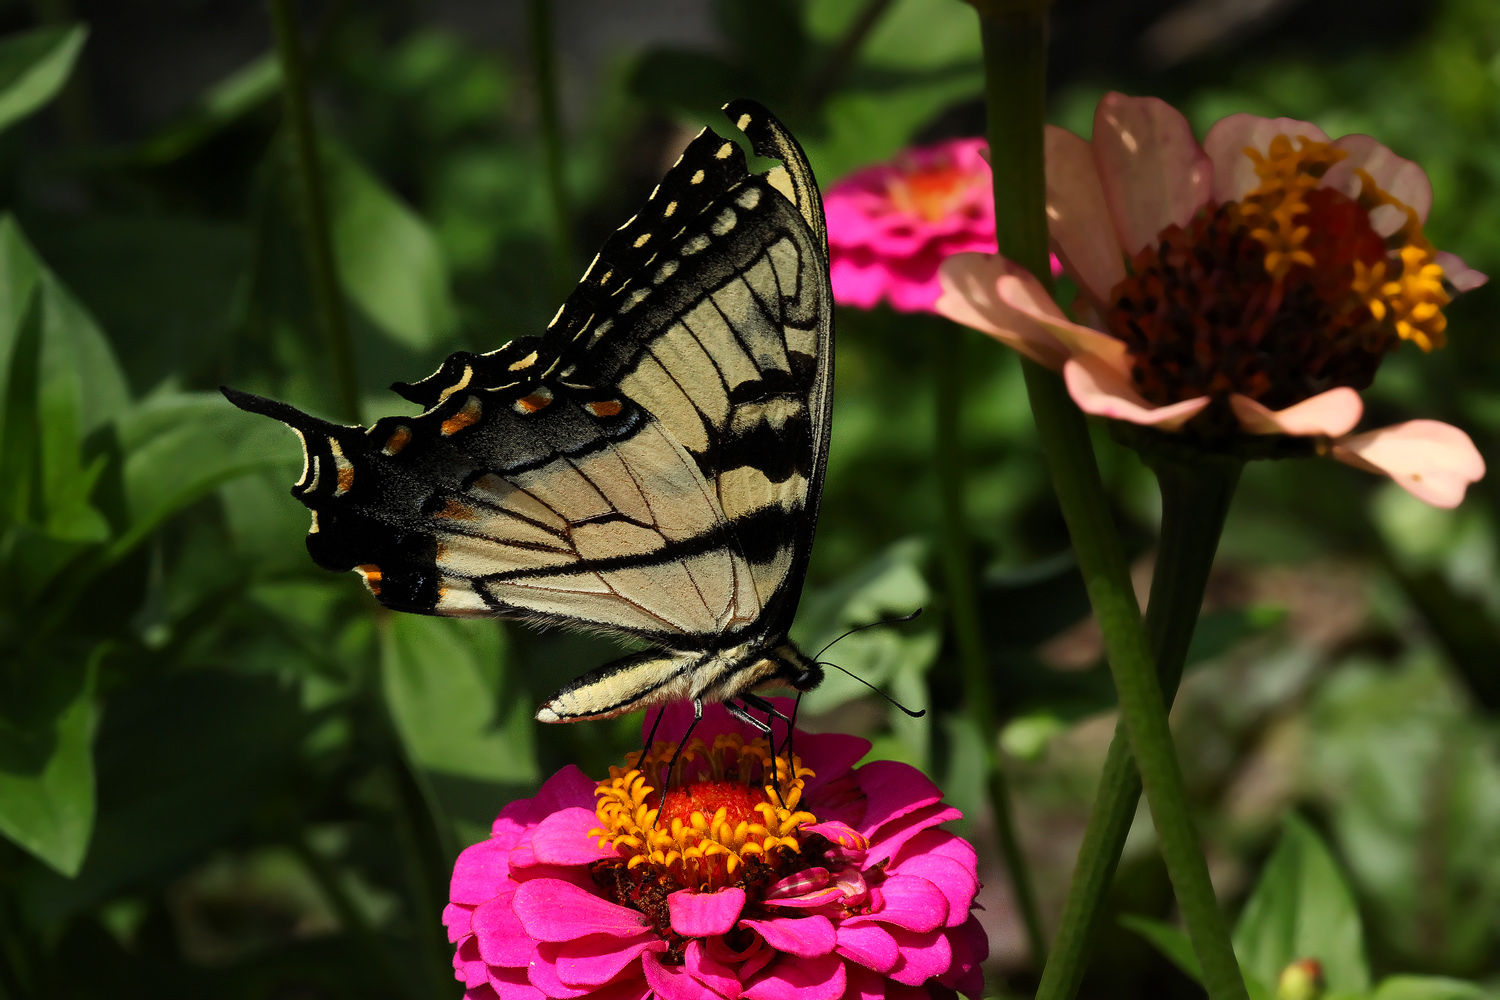 zinnia delight img aw author sava gregory and ver verena